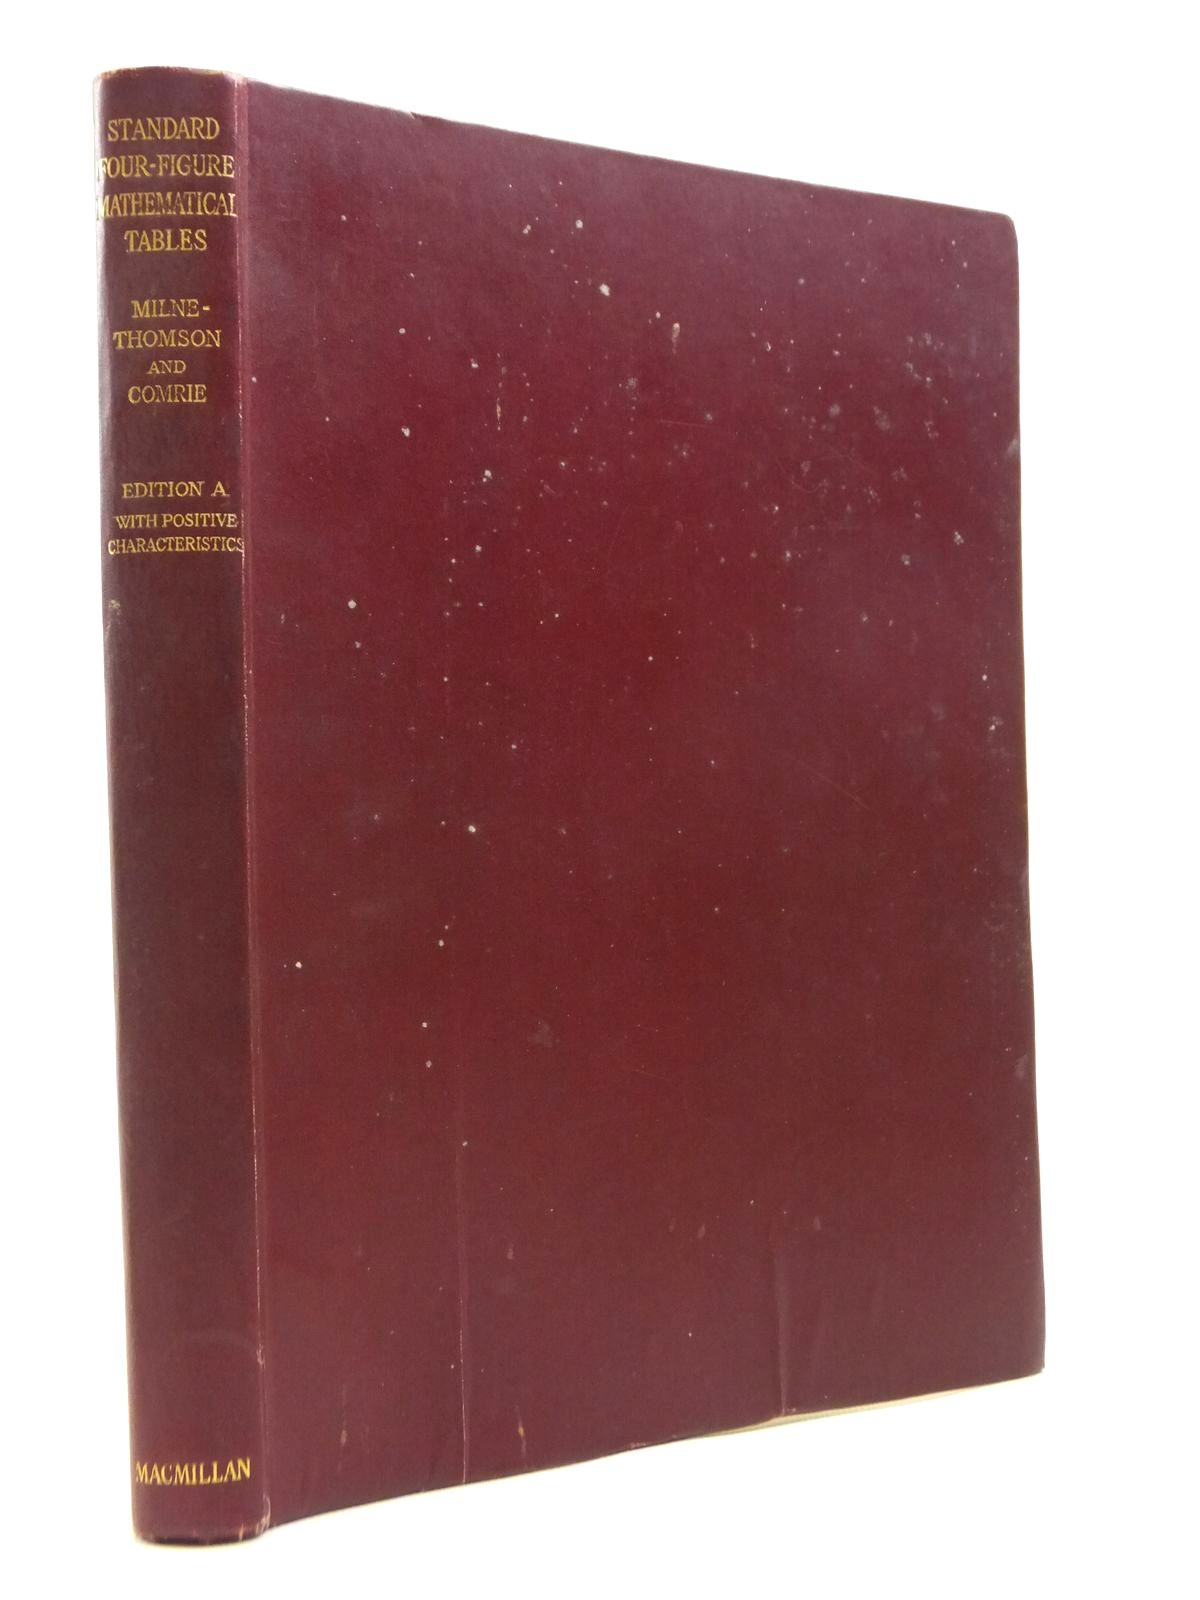 Photo of STANDARD FOUR-FIGURE MATHEMATICAL TABLES written by Milne-Thomson, L.M.<br />Comrie, L.J. published by Macmillan & Co. Ltd. (STOCK CODE: 1208314)  for sale by Stella & Rose's Books